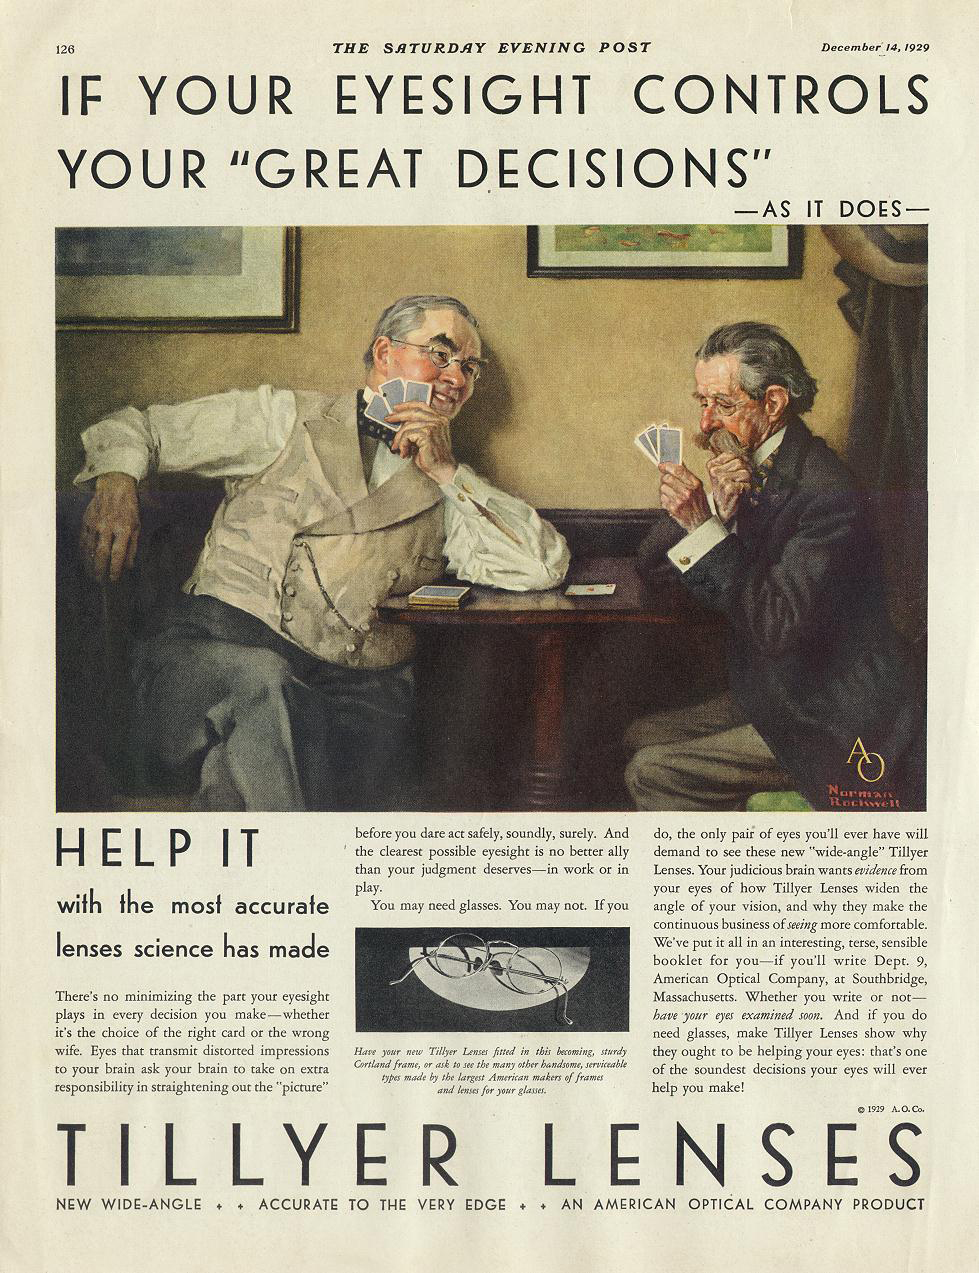 Norman Rockwell's painting featured in this advertisement for                        American Optical sold for $1.3 million in 2014